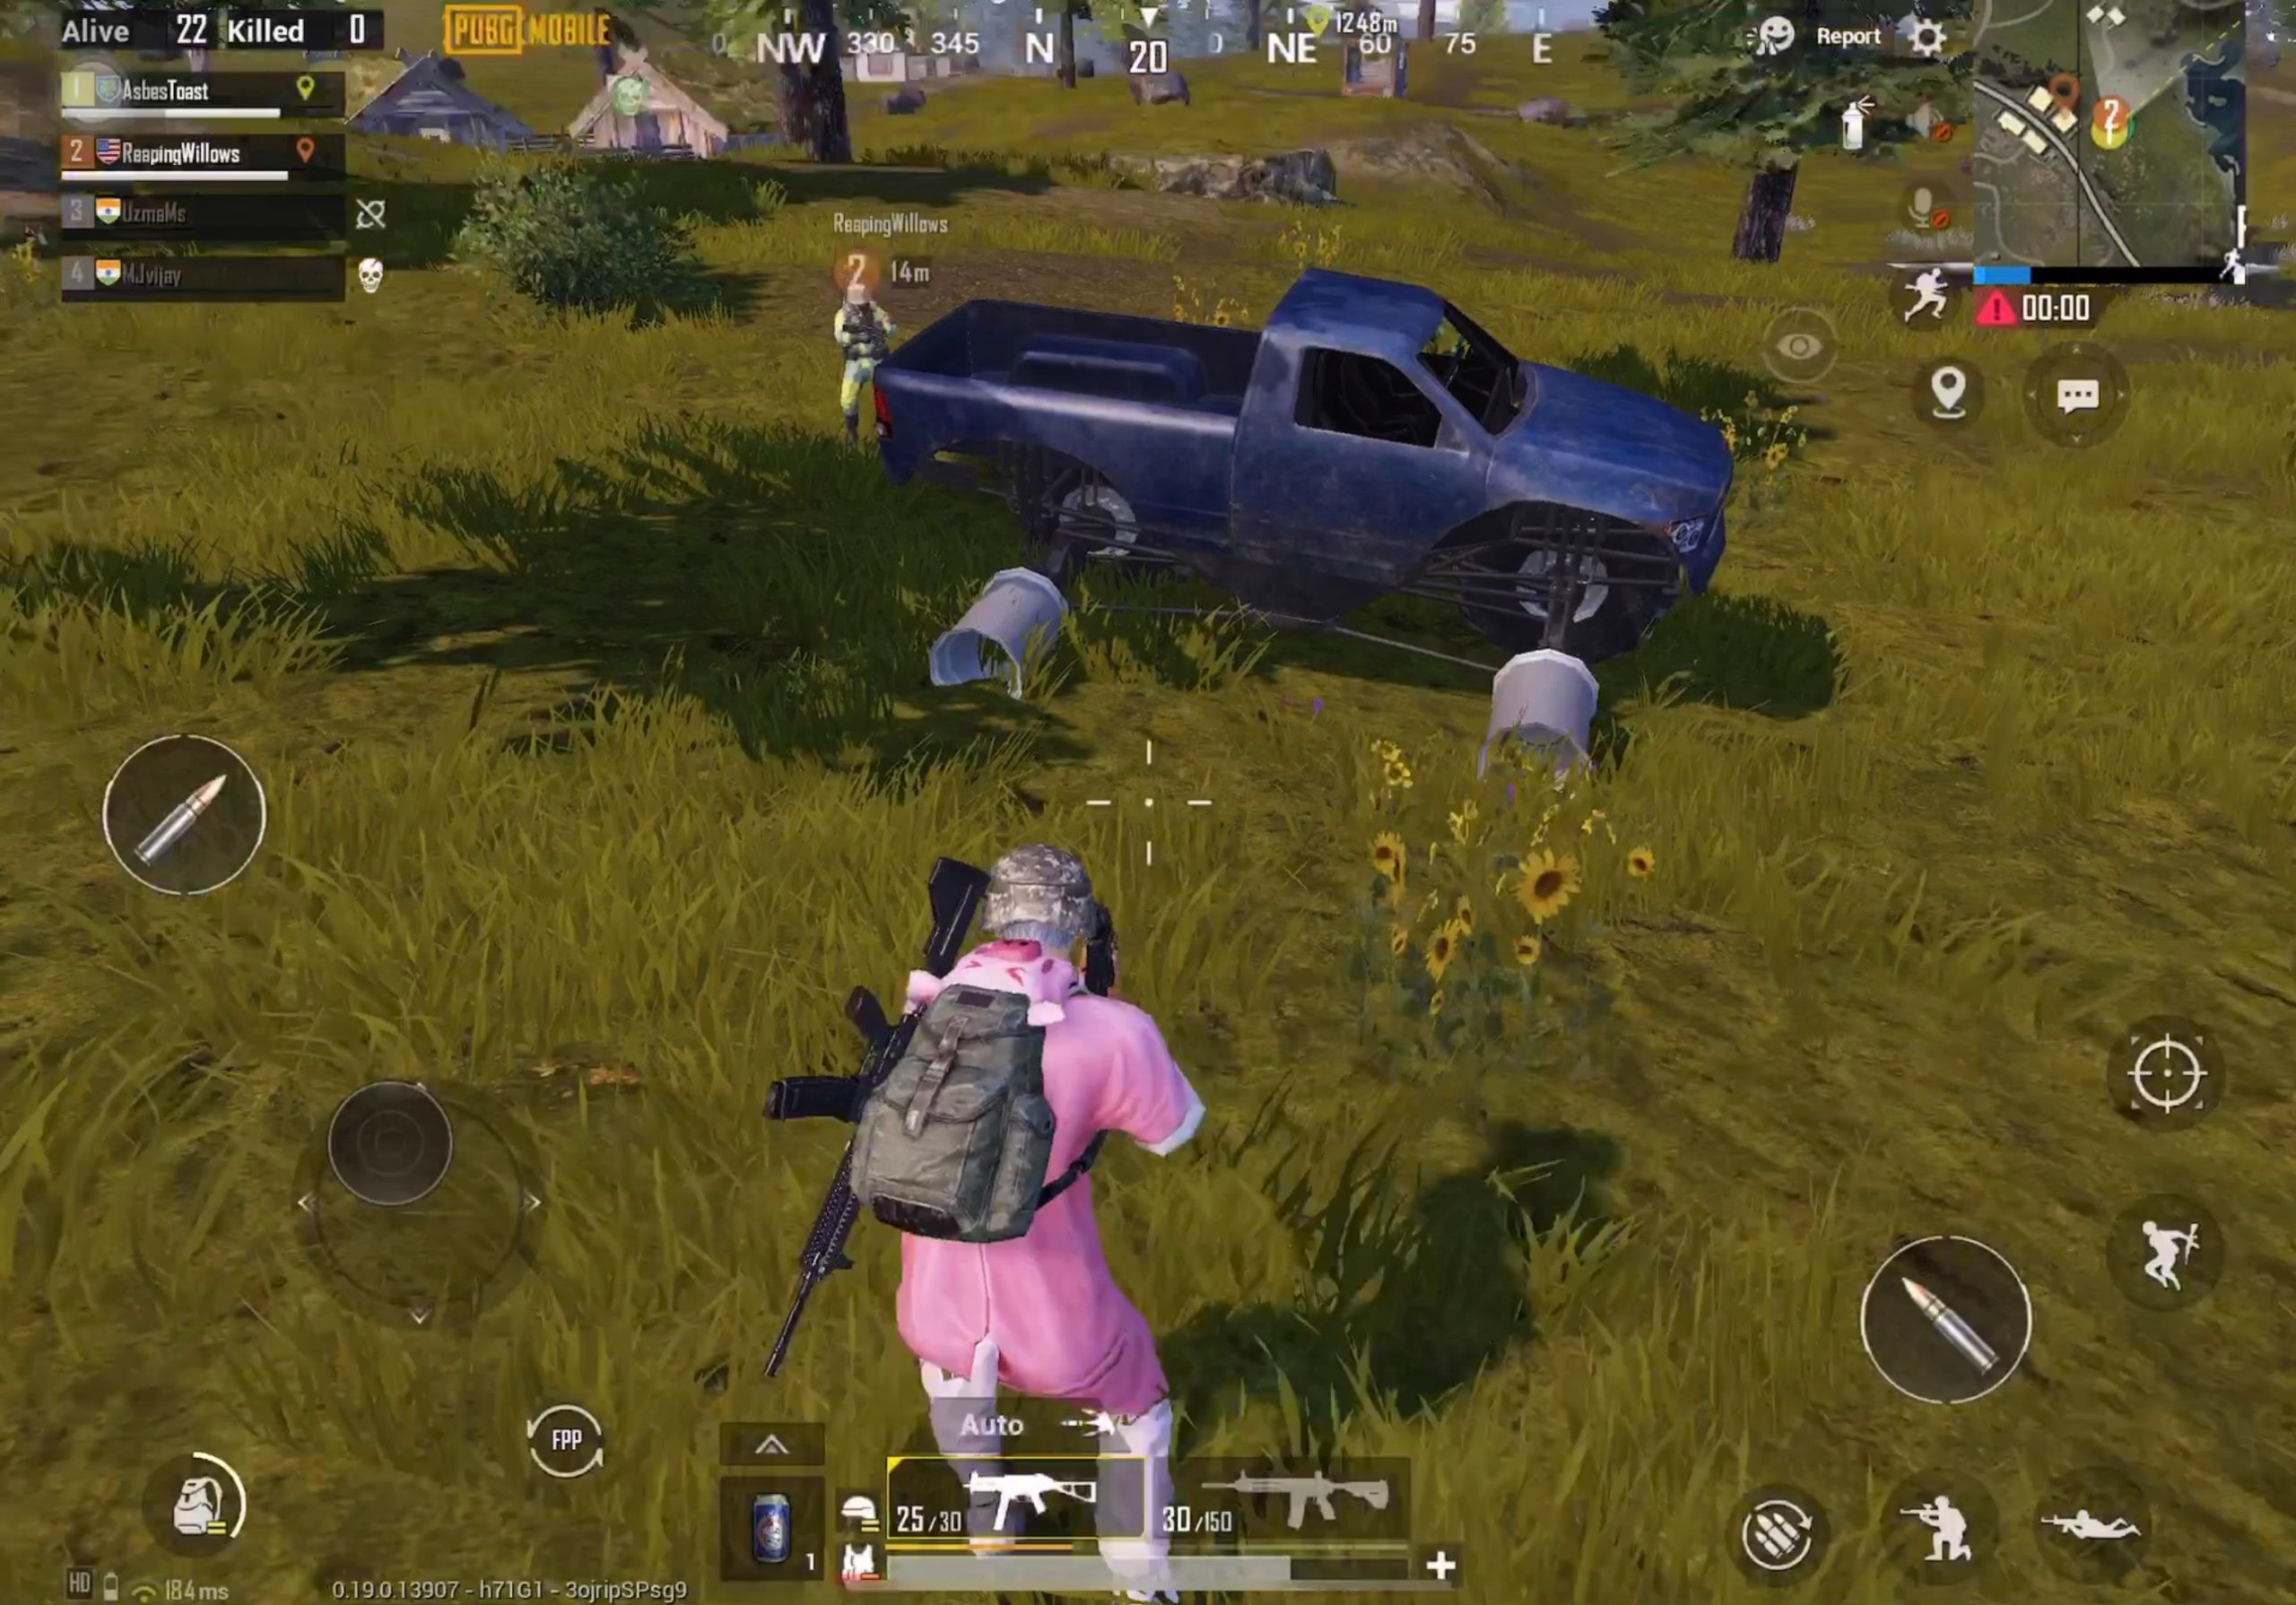 PUBG Mobile Monster Truck with tires popped